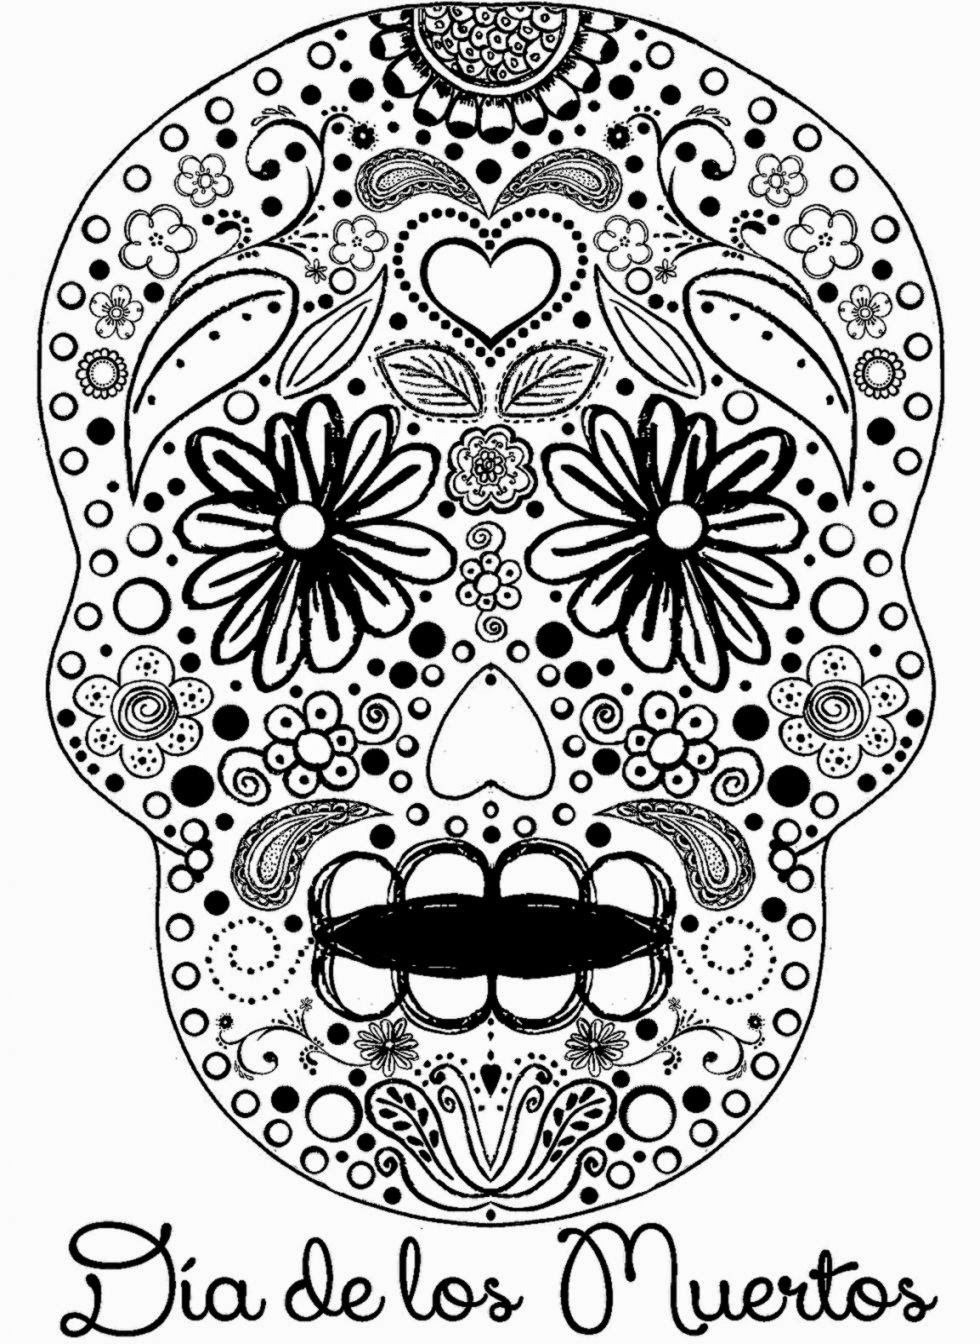 Dia De Los Muertos Coloring Pages At Getdrawings Com Free For